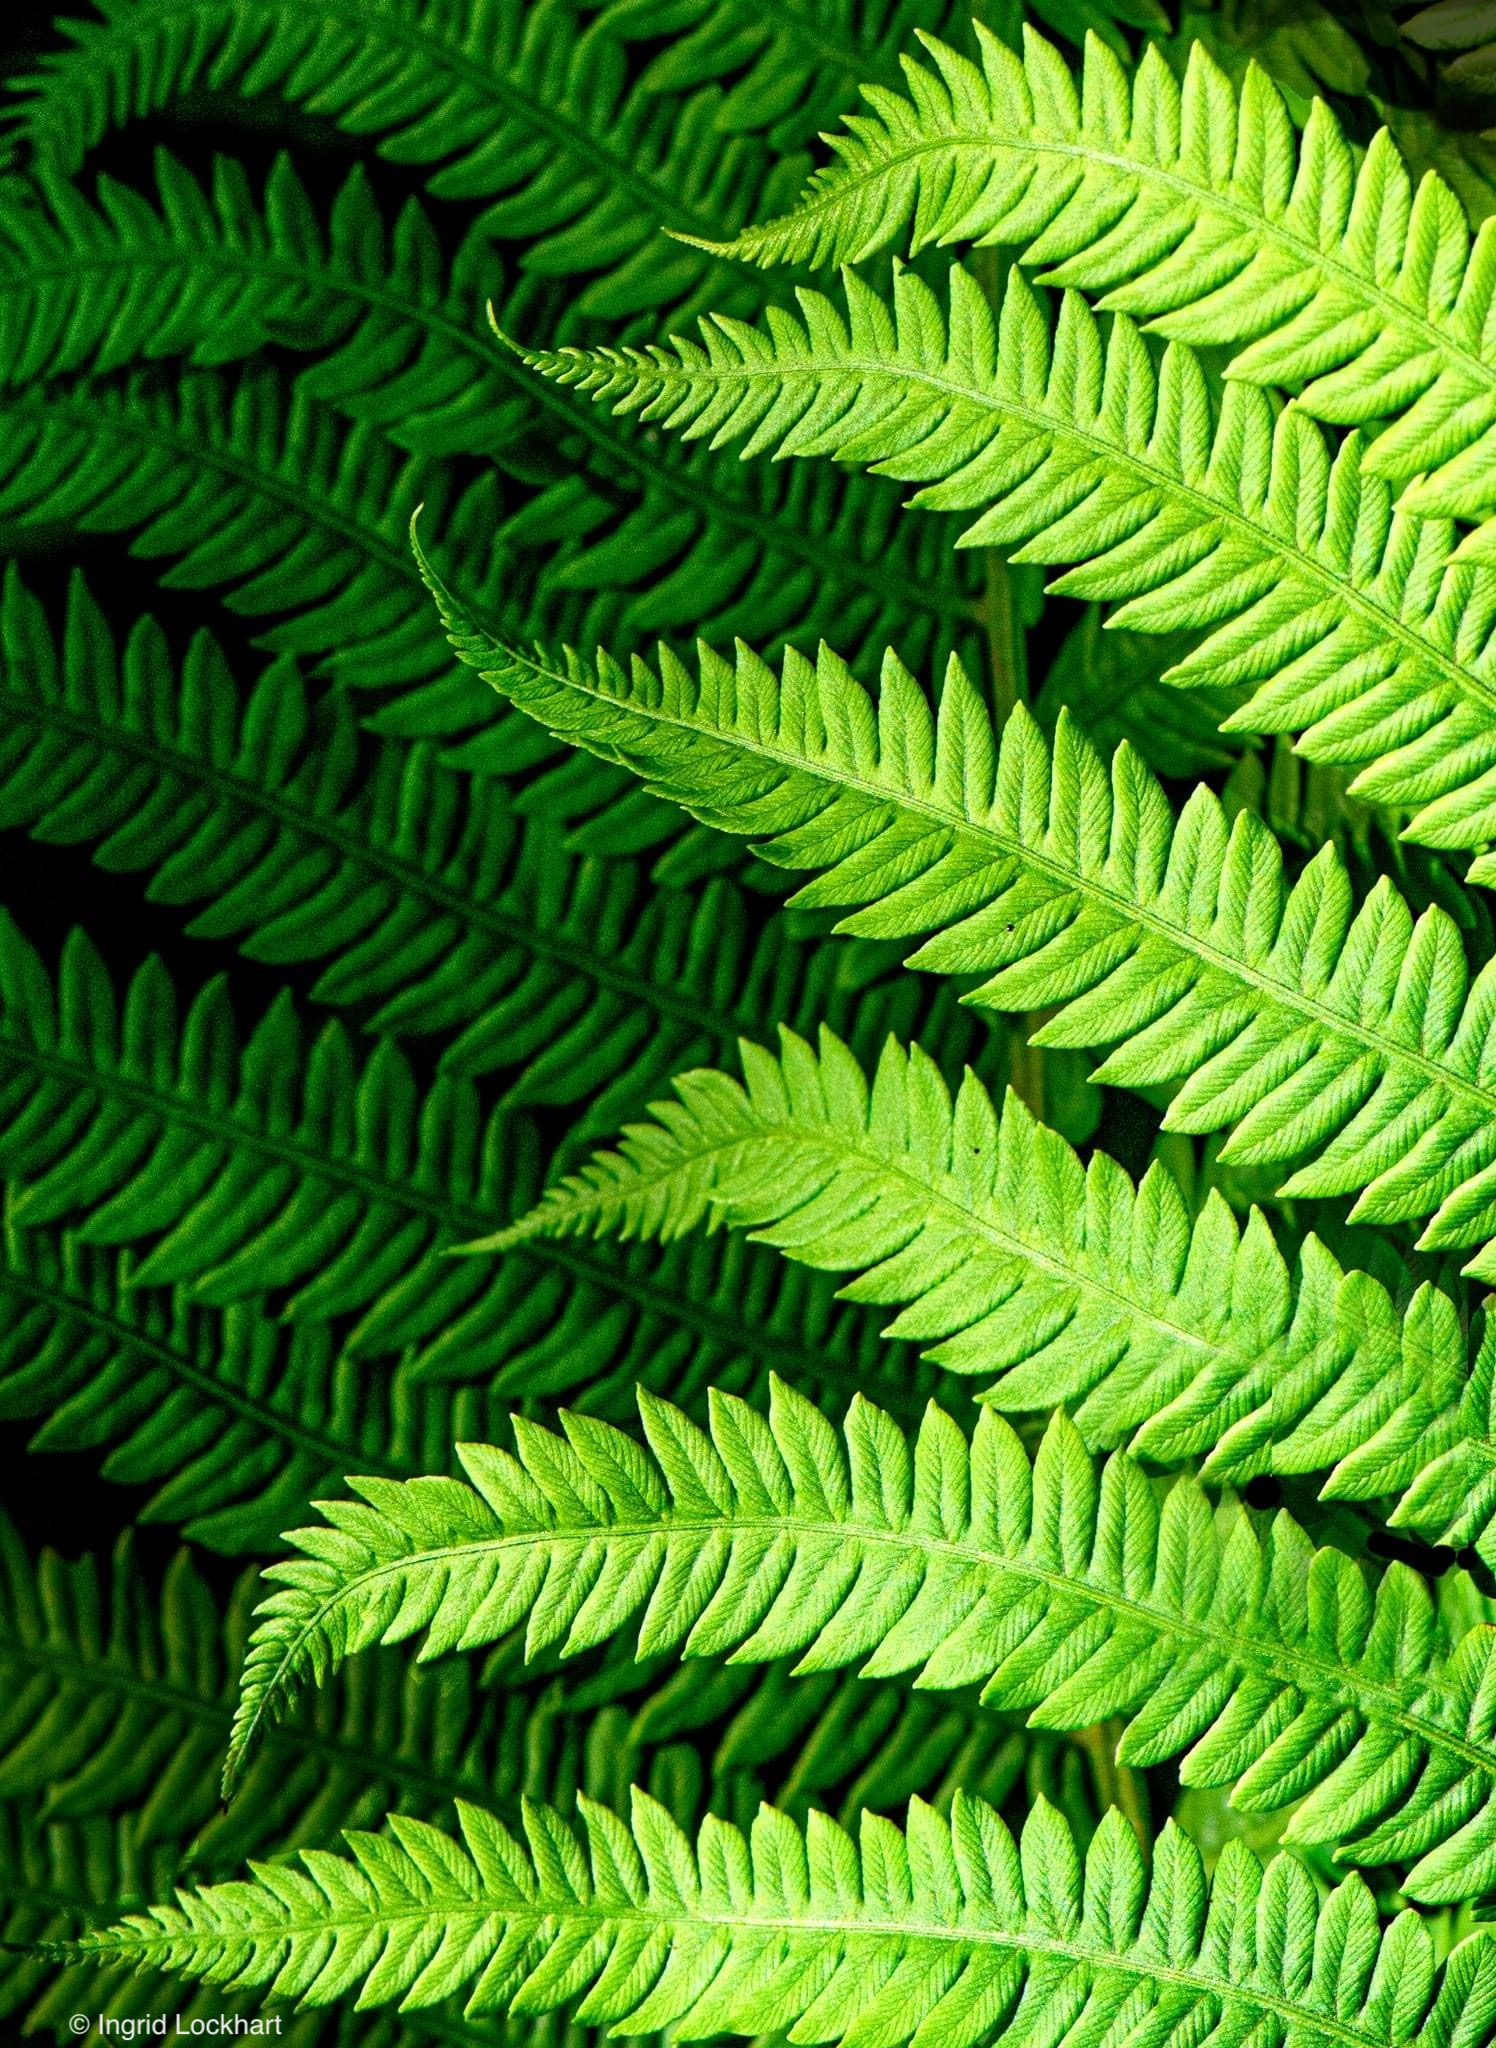 Macro photo of fern leaves in light and shadows